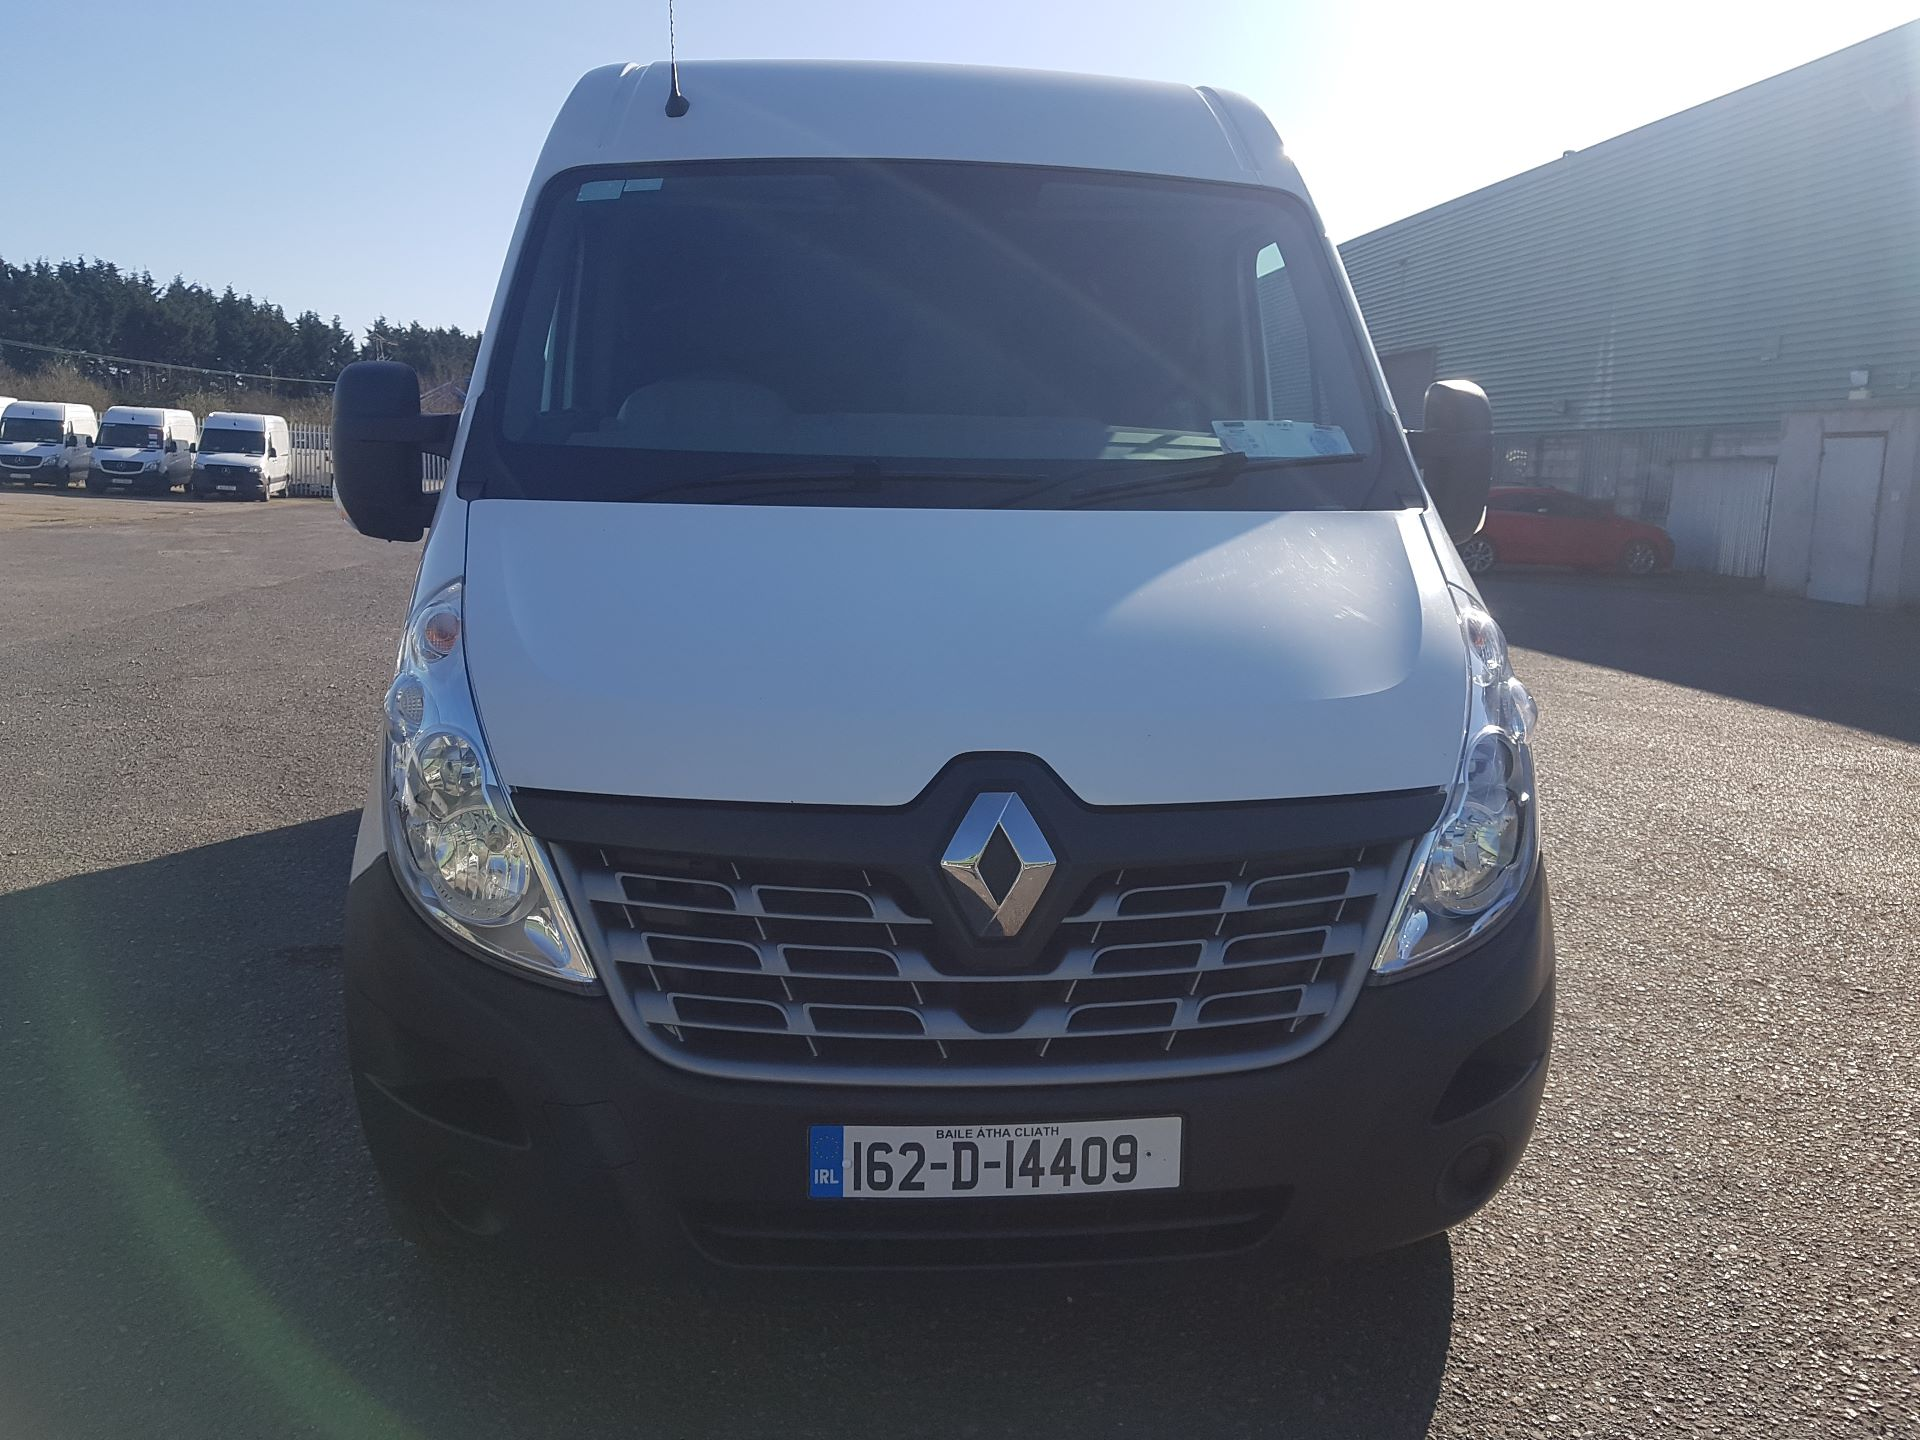 2016 Renault Master III FWD LM35 DCI 125 Business 3DR (162D14409) Image 8